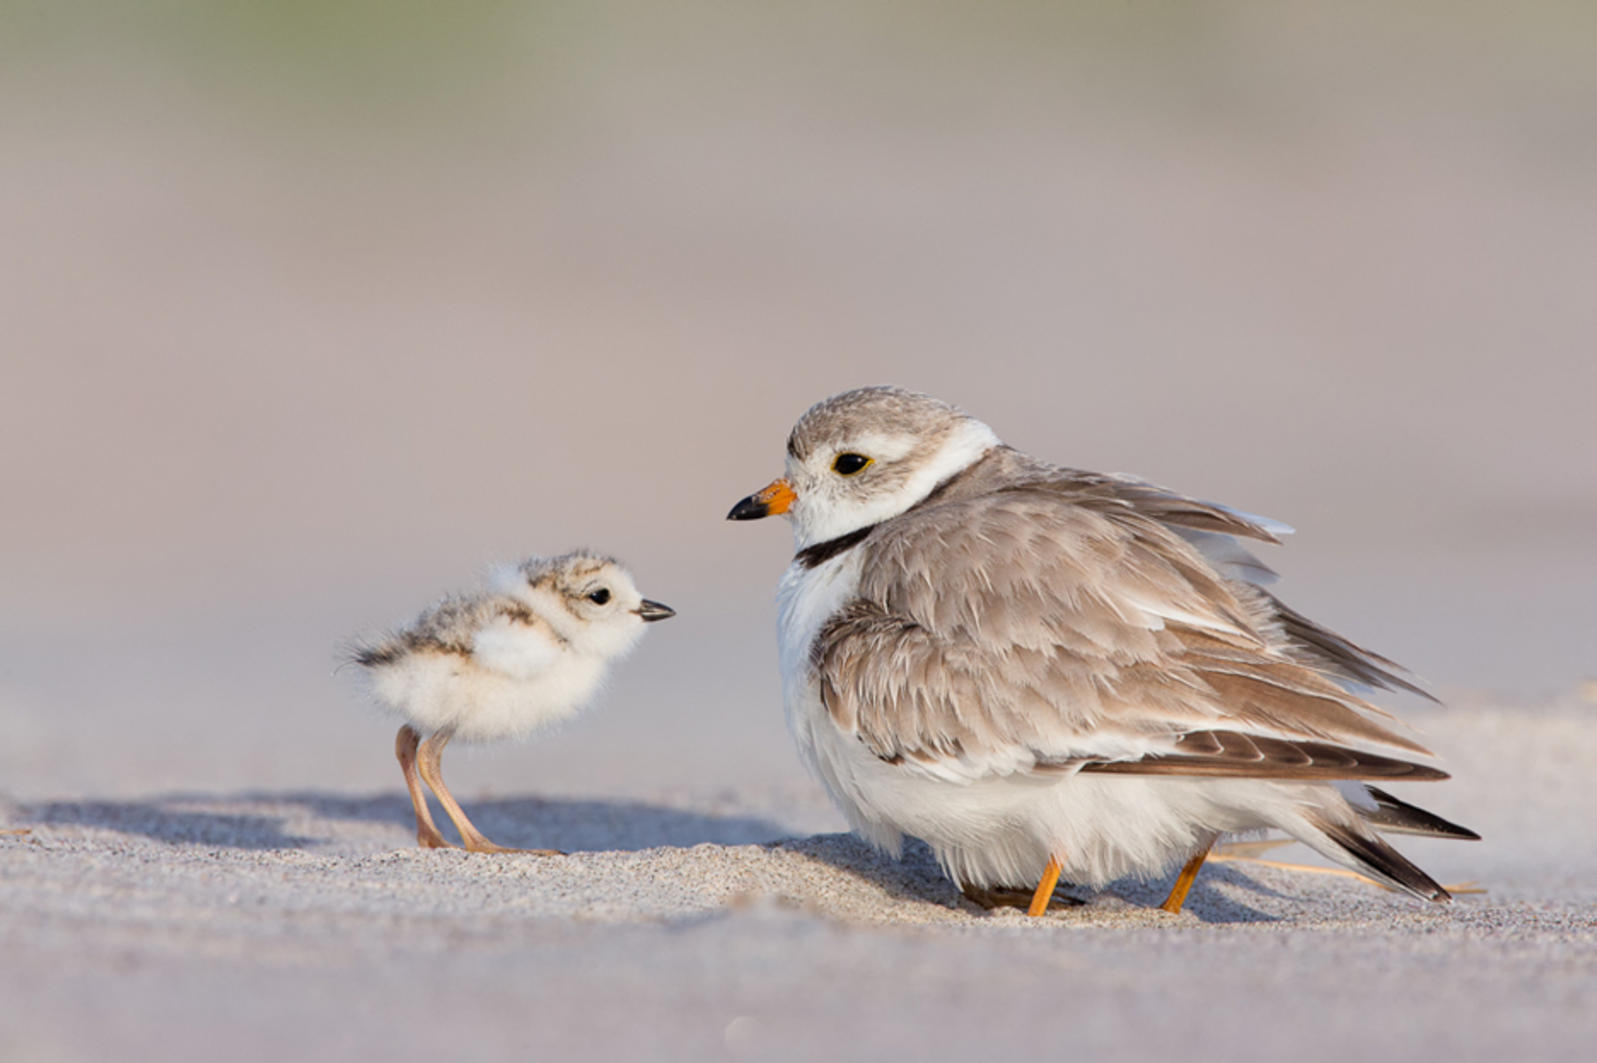 Baby piping plover - photo#8